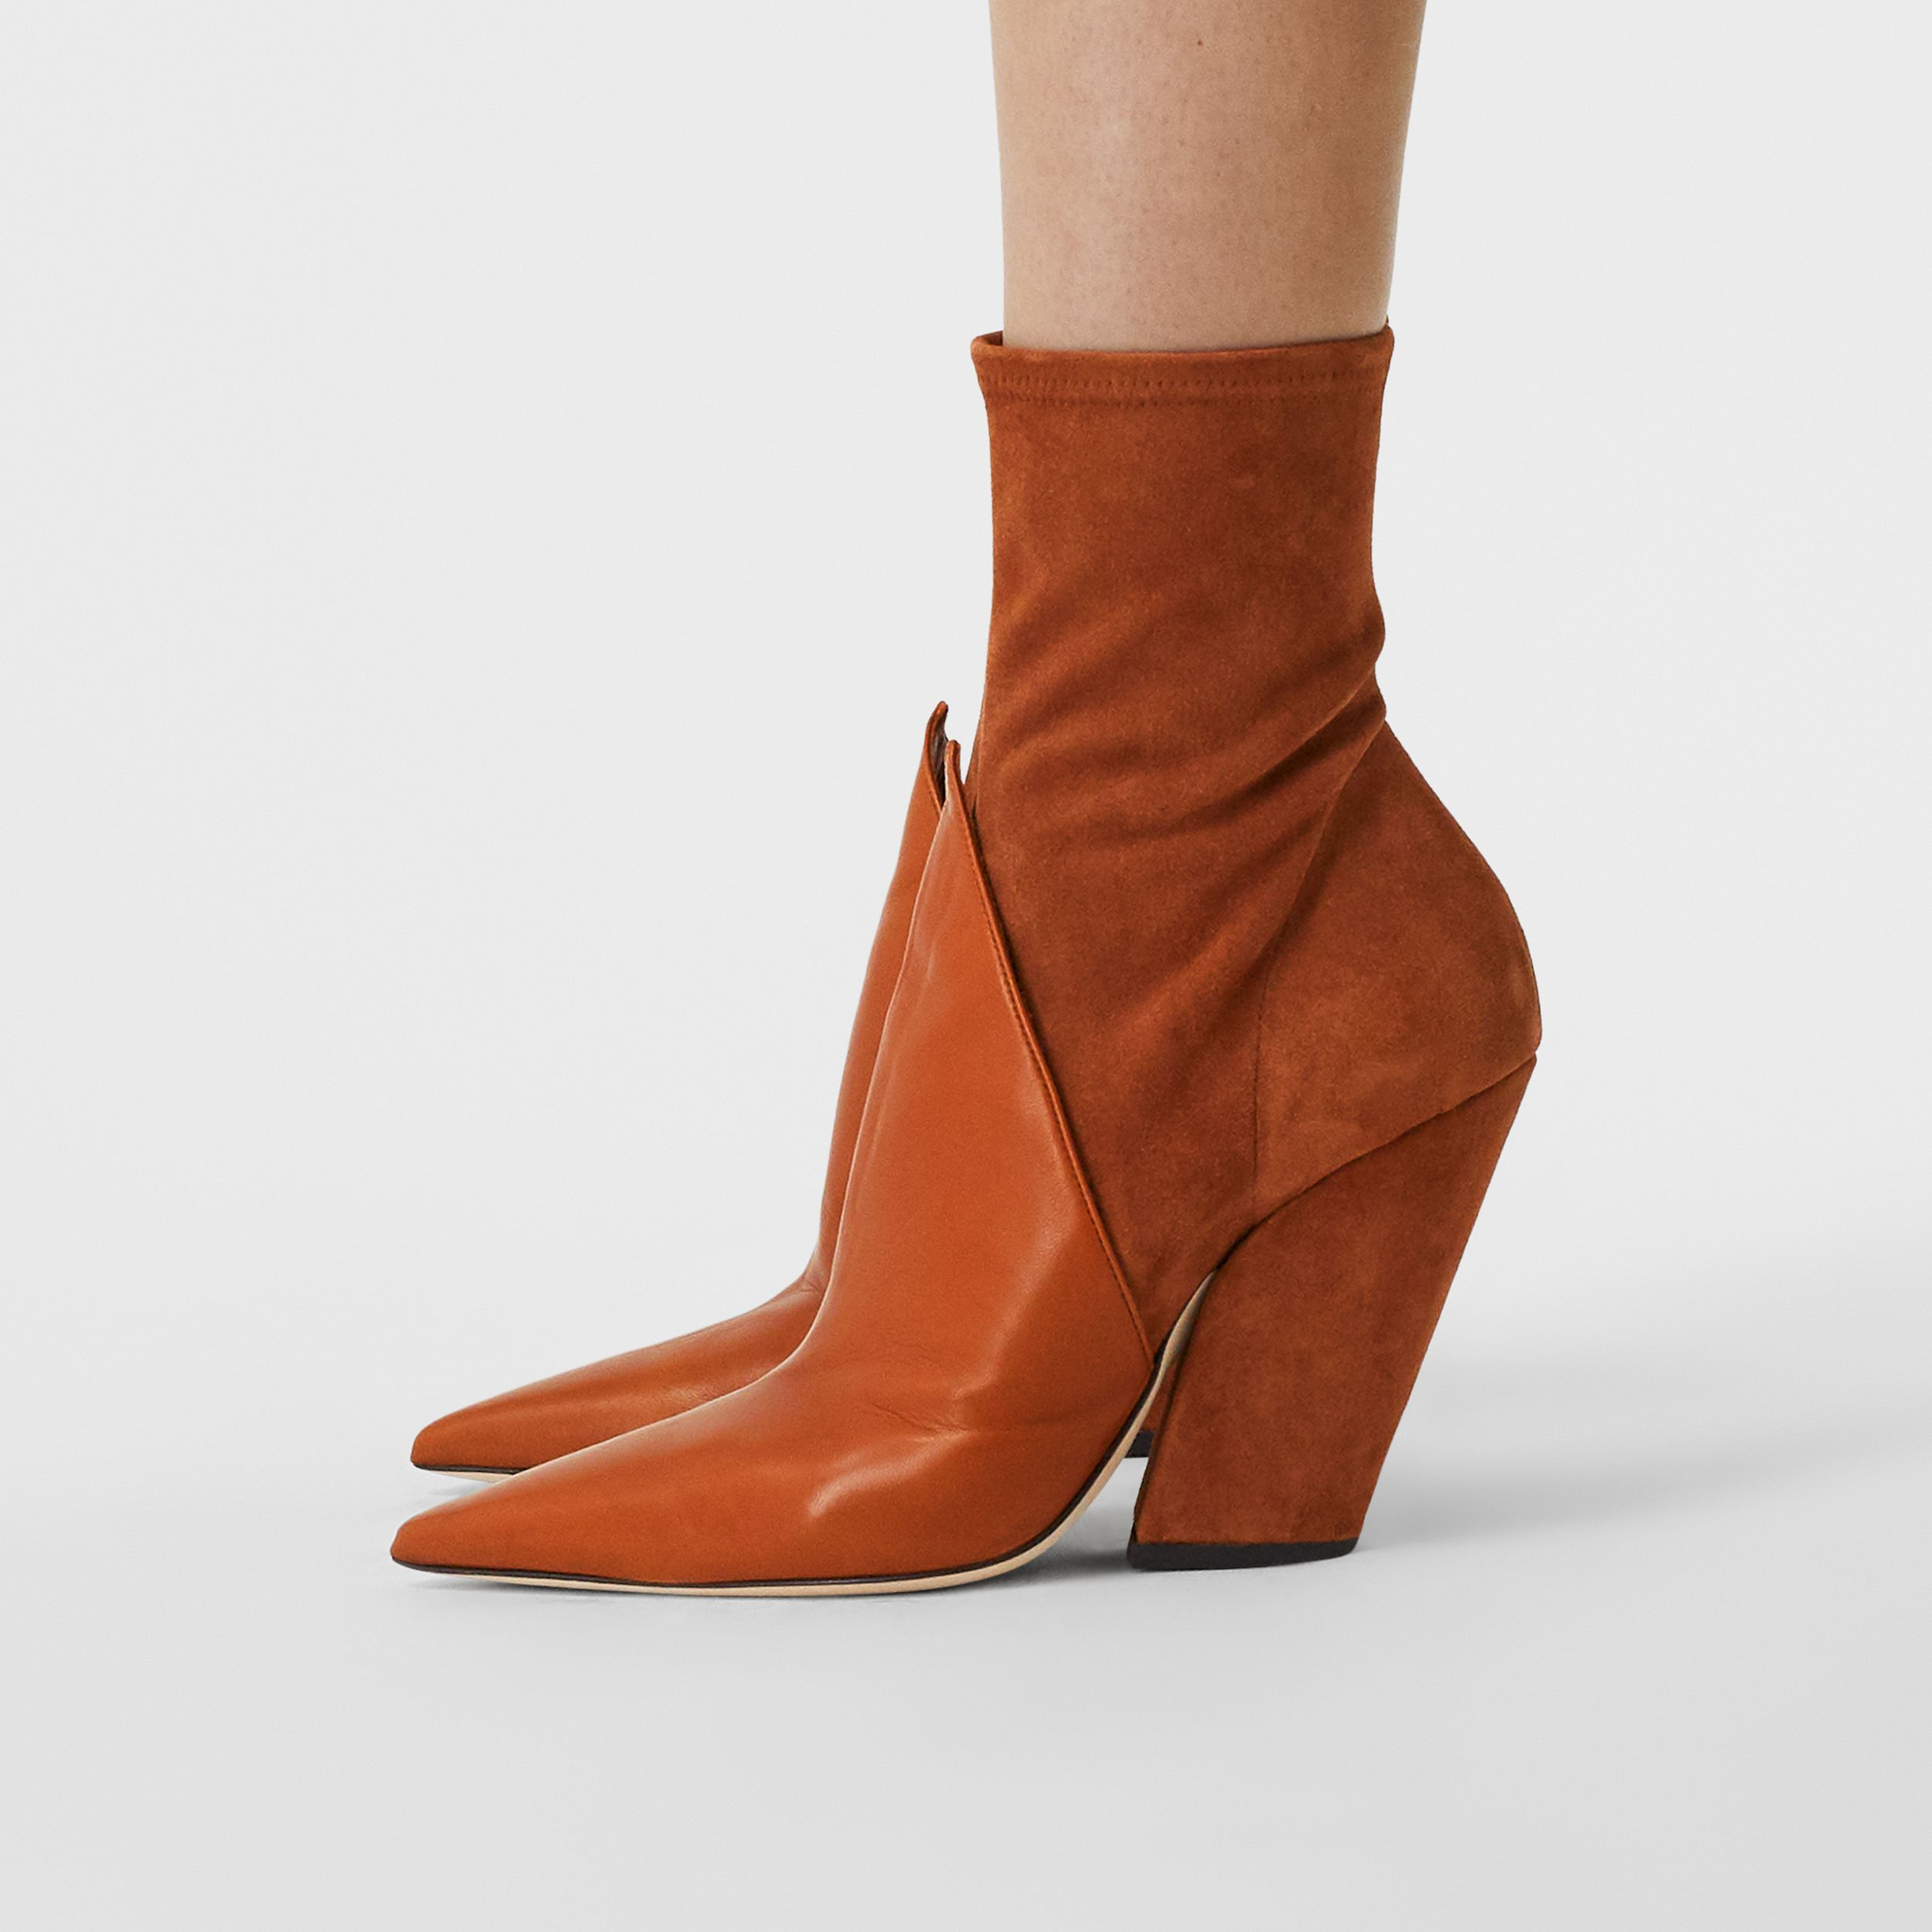 Panelled Suede and Lambskin Ankle Boots in Nutmeg - Women | Burberry - 3